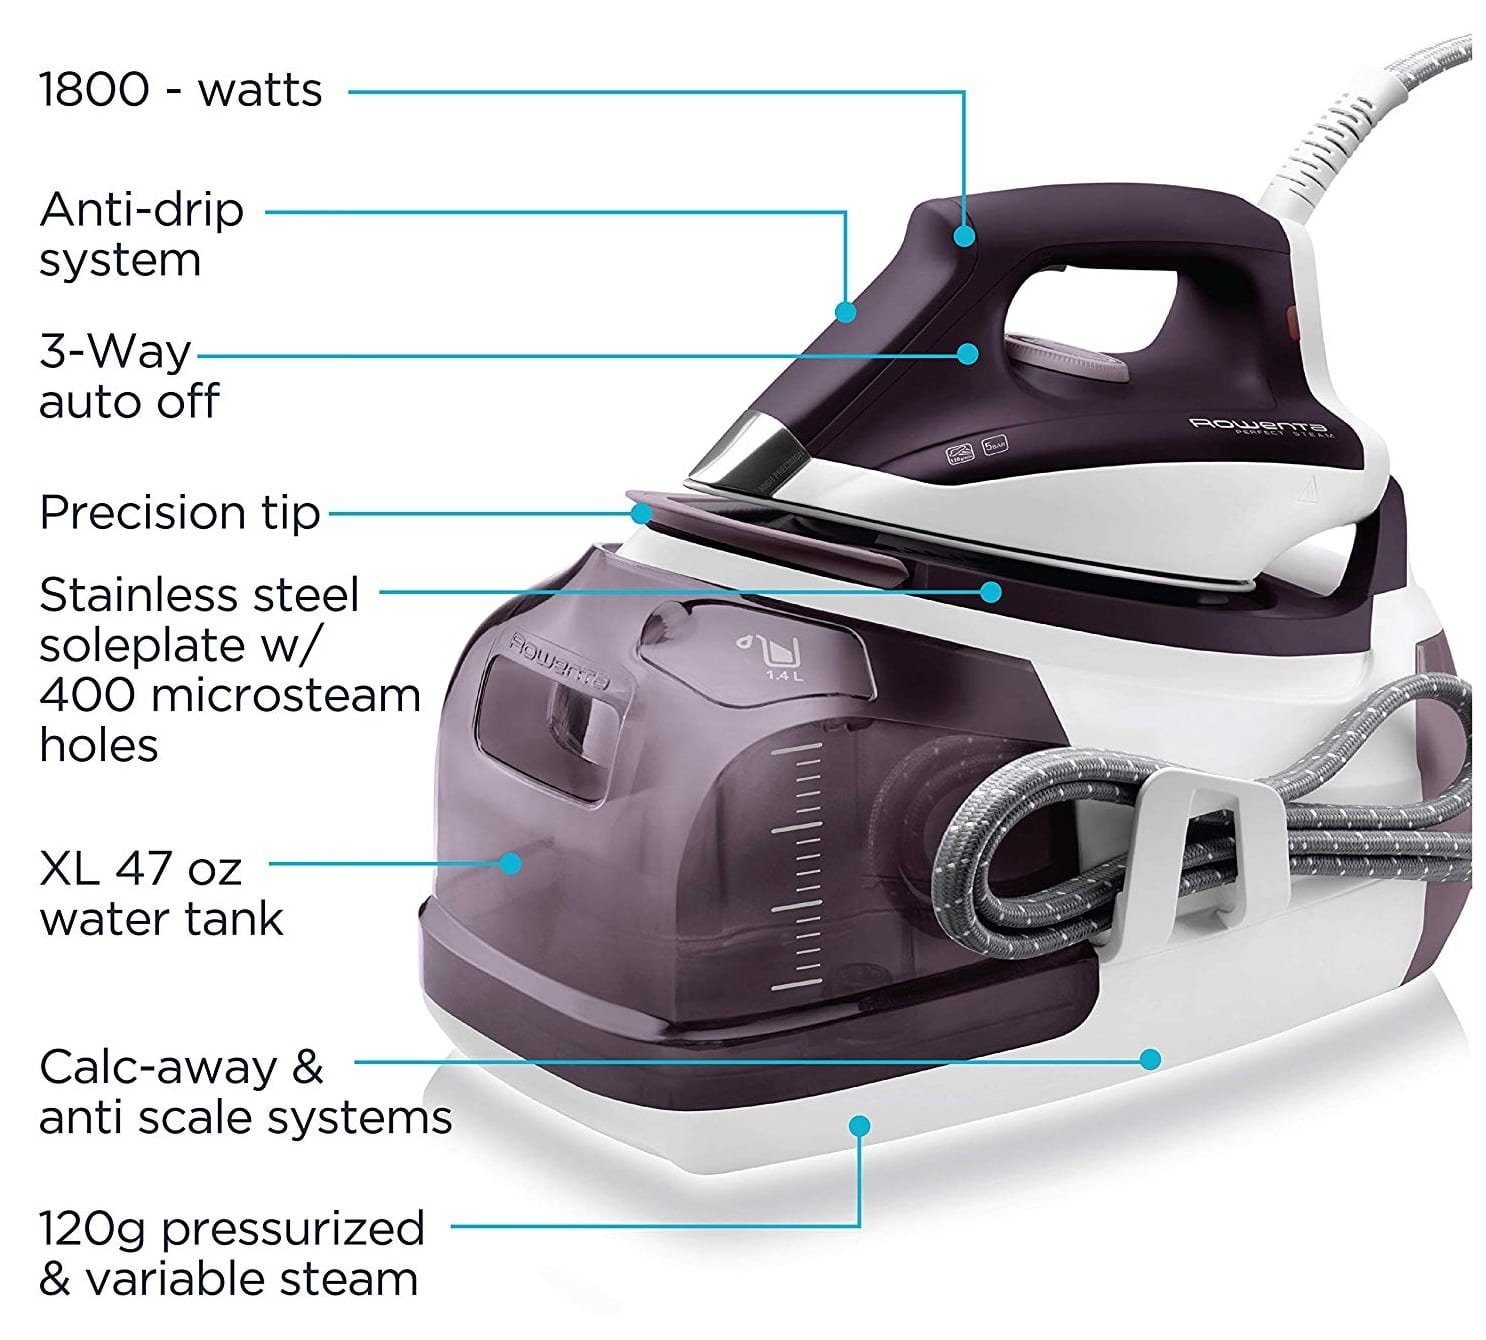 Best Iron for Quilting - Rowenta DG8520 Perfect Steam 1800-Watt Eco Energy Steam Iron Station